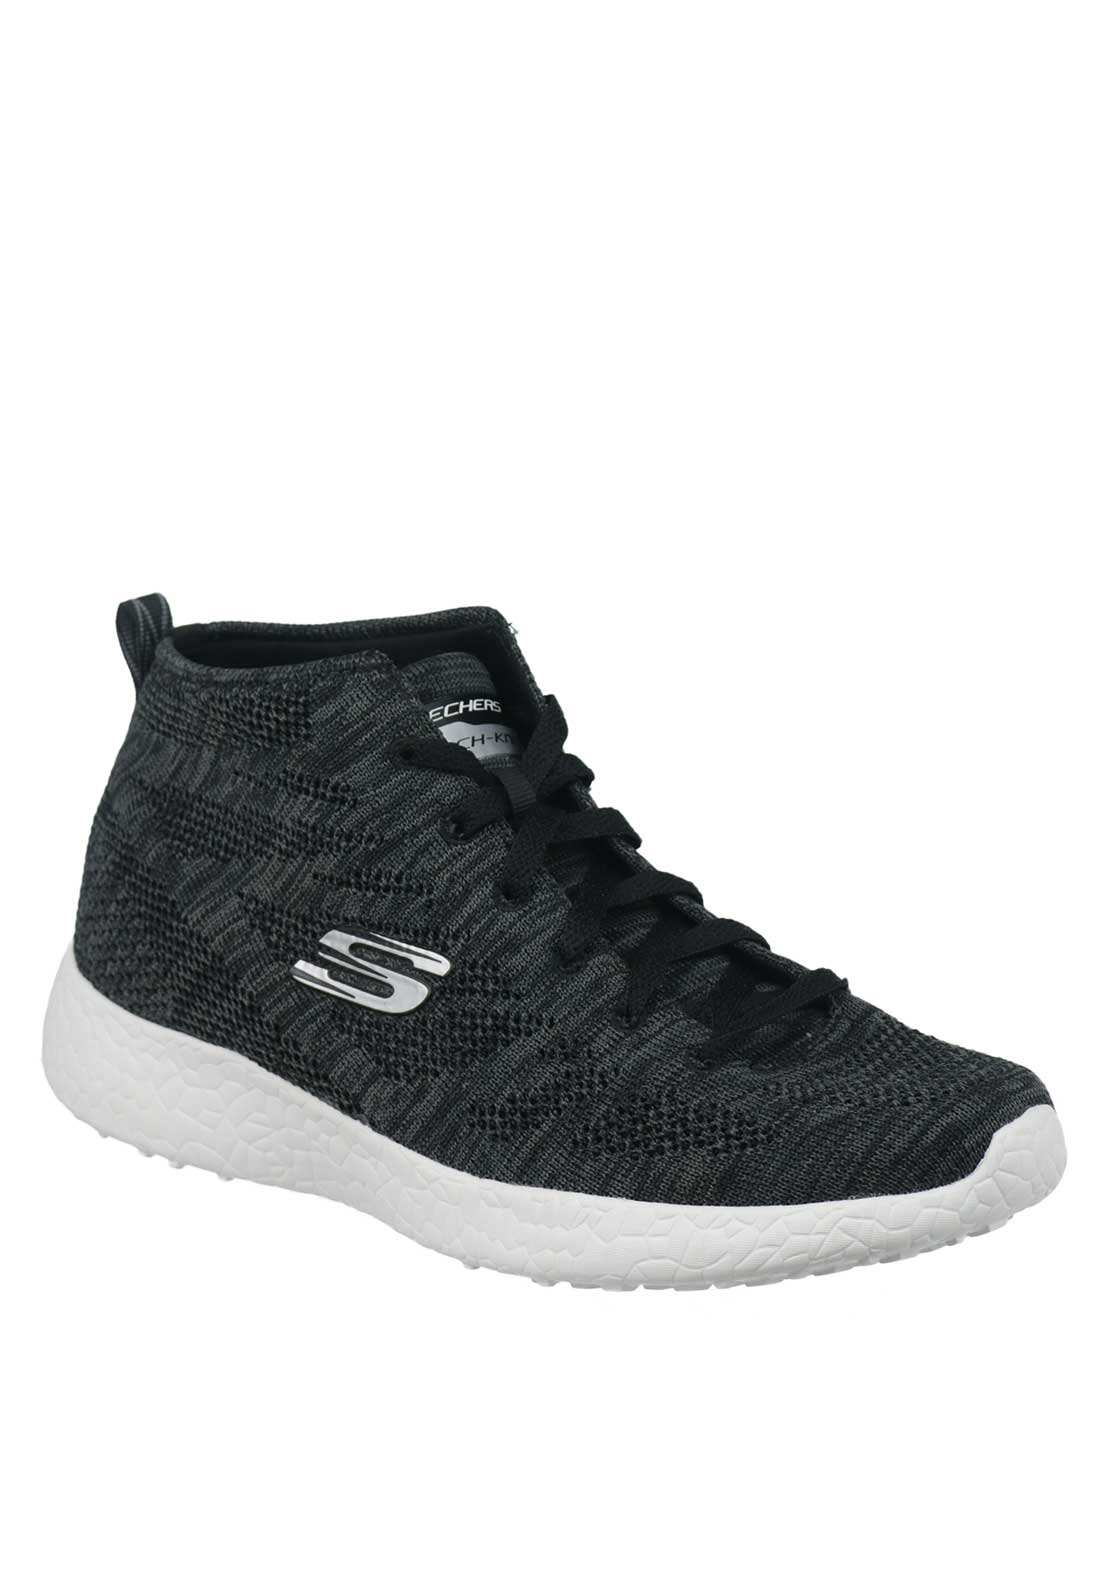 Skechers Womens Burst Divergent Hi Top Trainers, Charcoal Grey